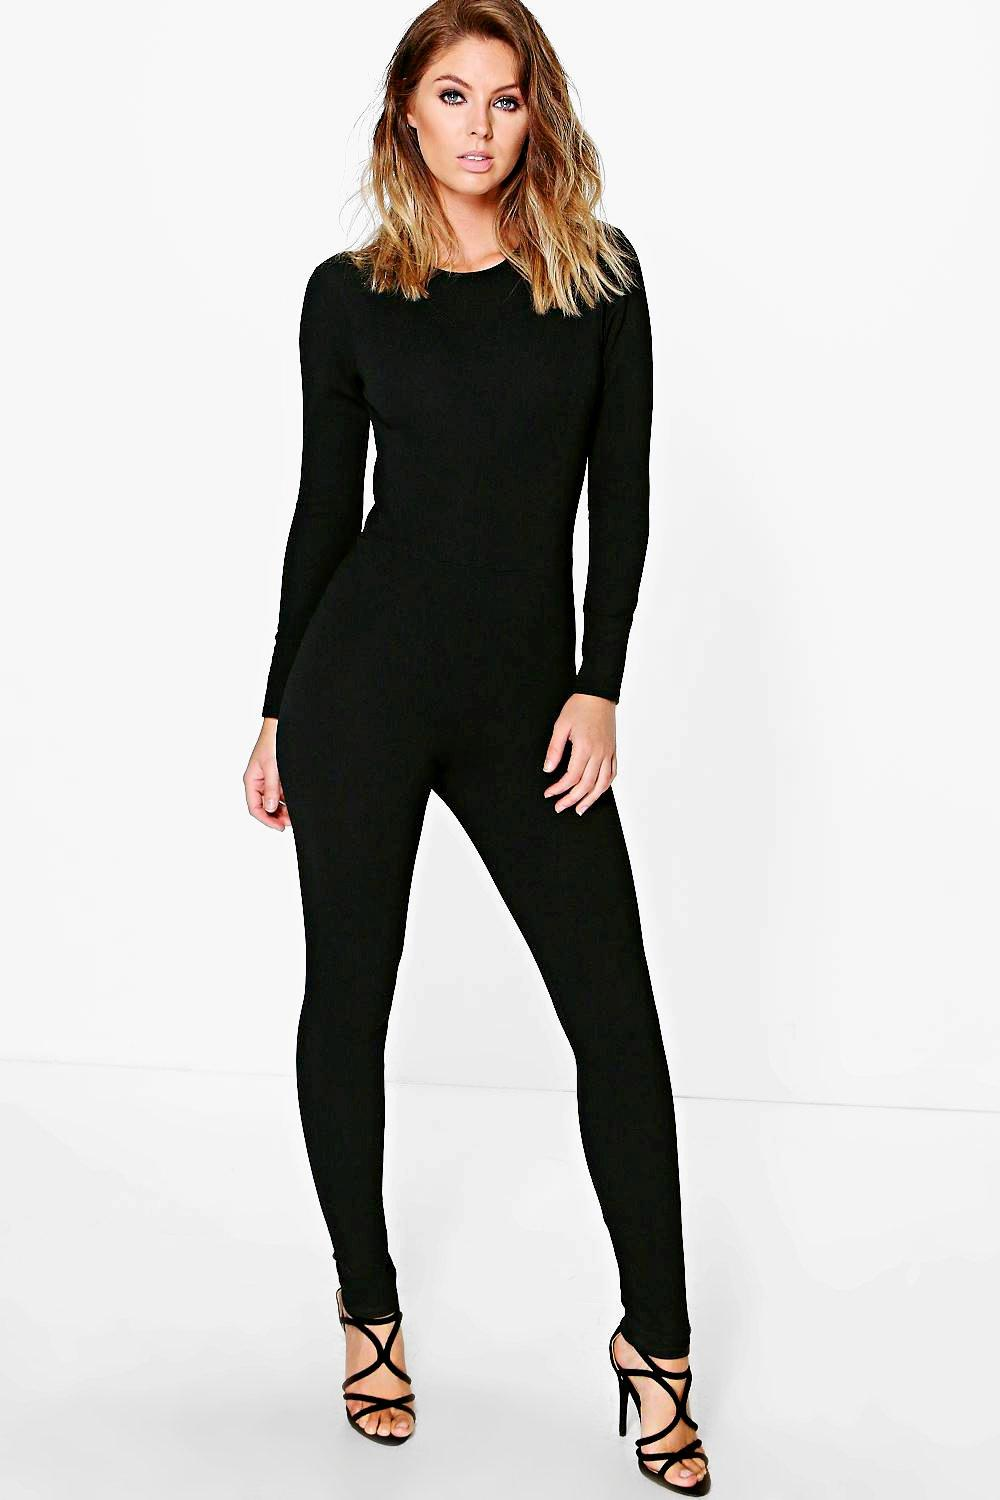 Lastest Throw On A Jumpsuit And Youve Got A Complete Outfit In One Easy Item Whether You Prefer Jumpsuits With Long Pants Or Shorts Referred To As Playsuits Or Rompers, Youll Love The Convenience Of The